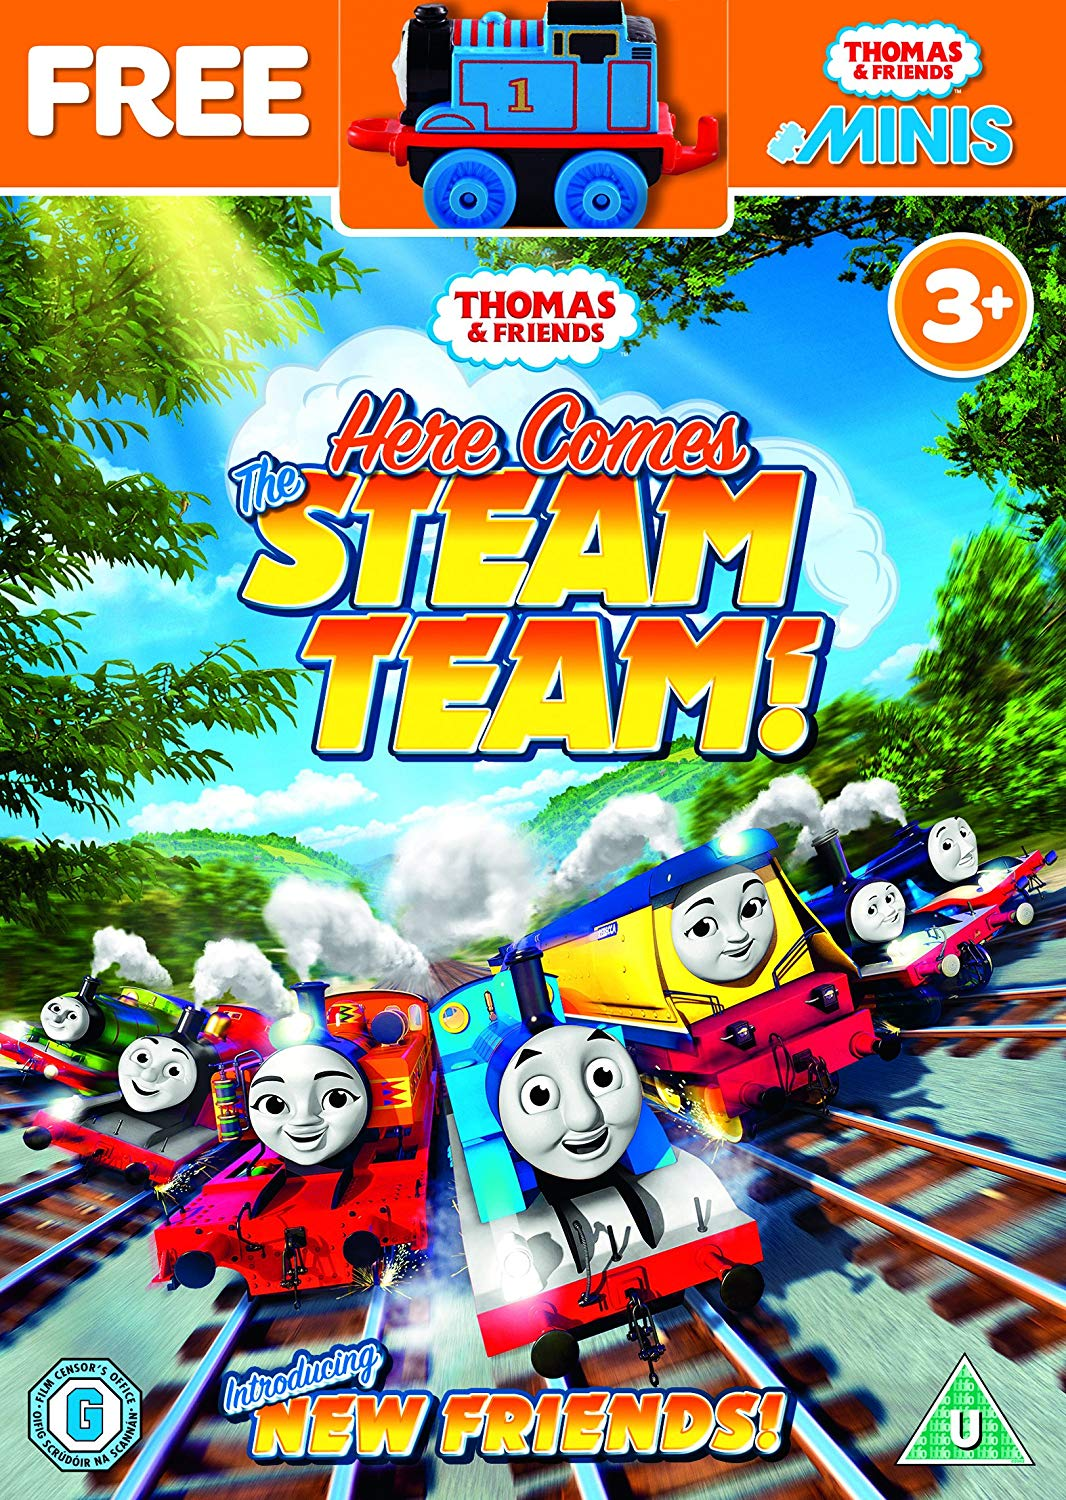 Here Comes the Steam Team!